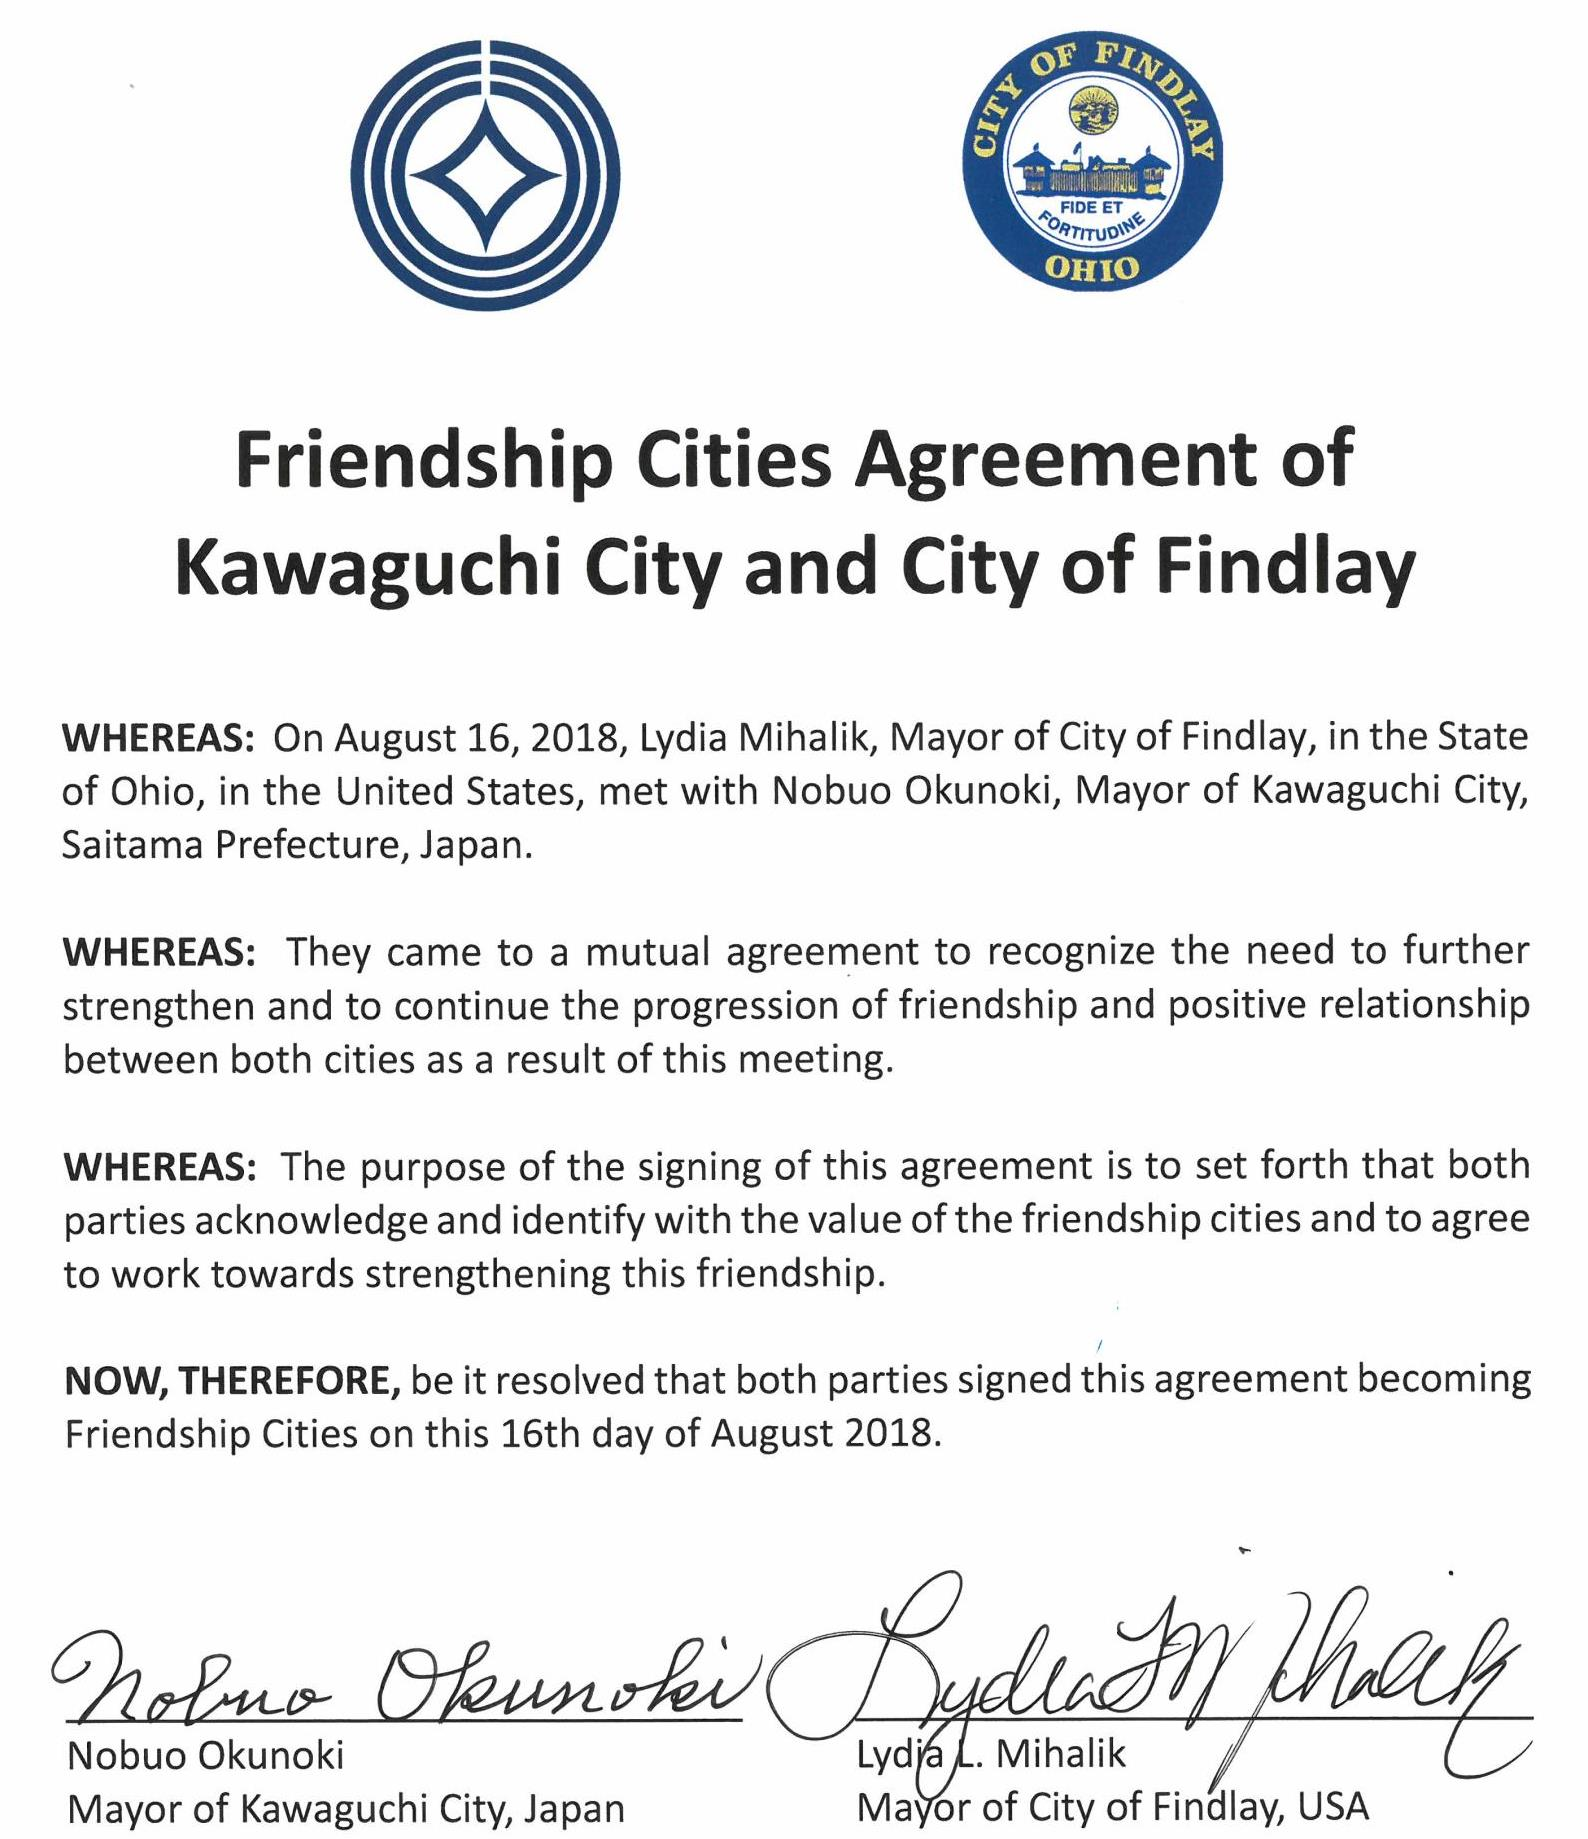 Friendship Cities Agreement